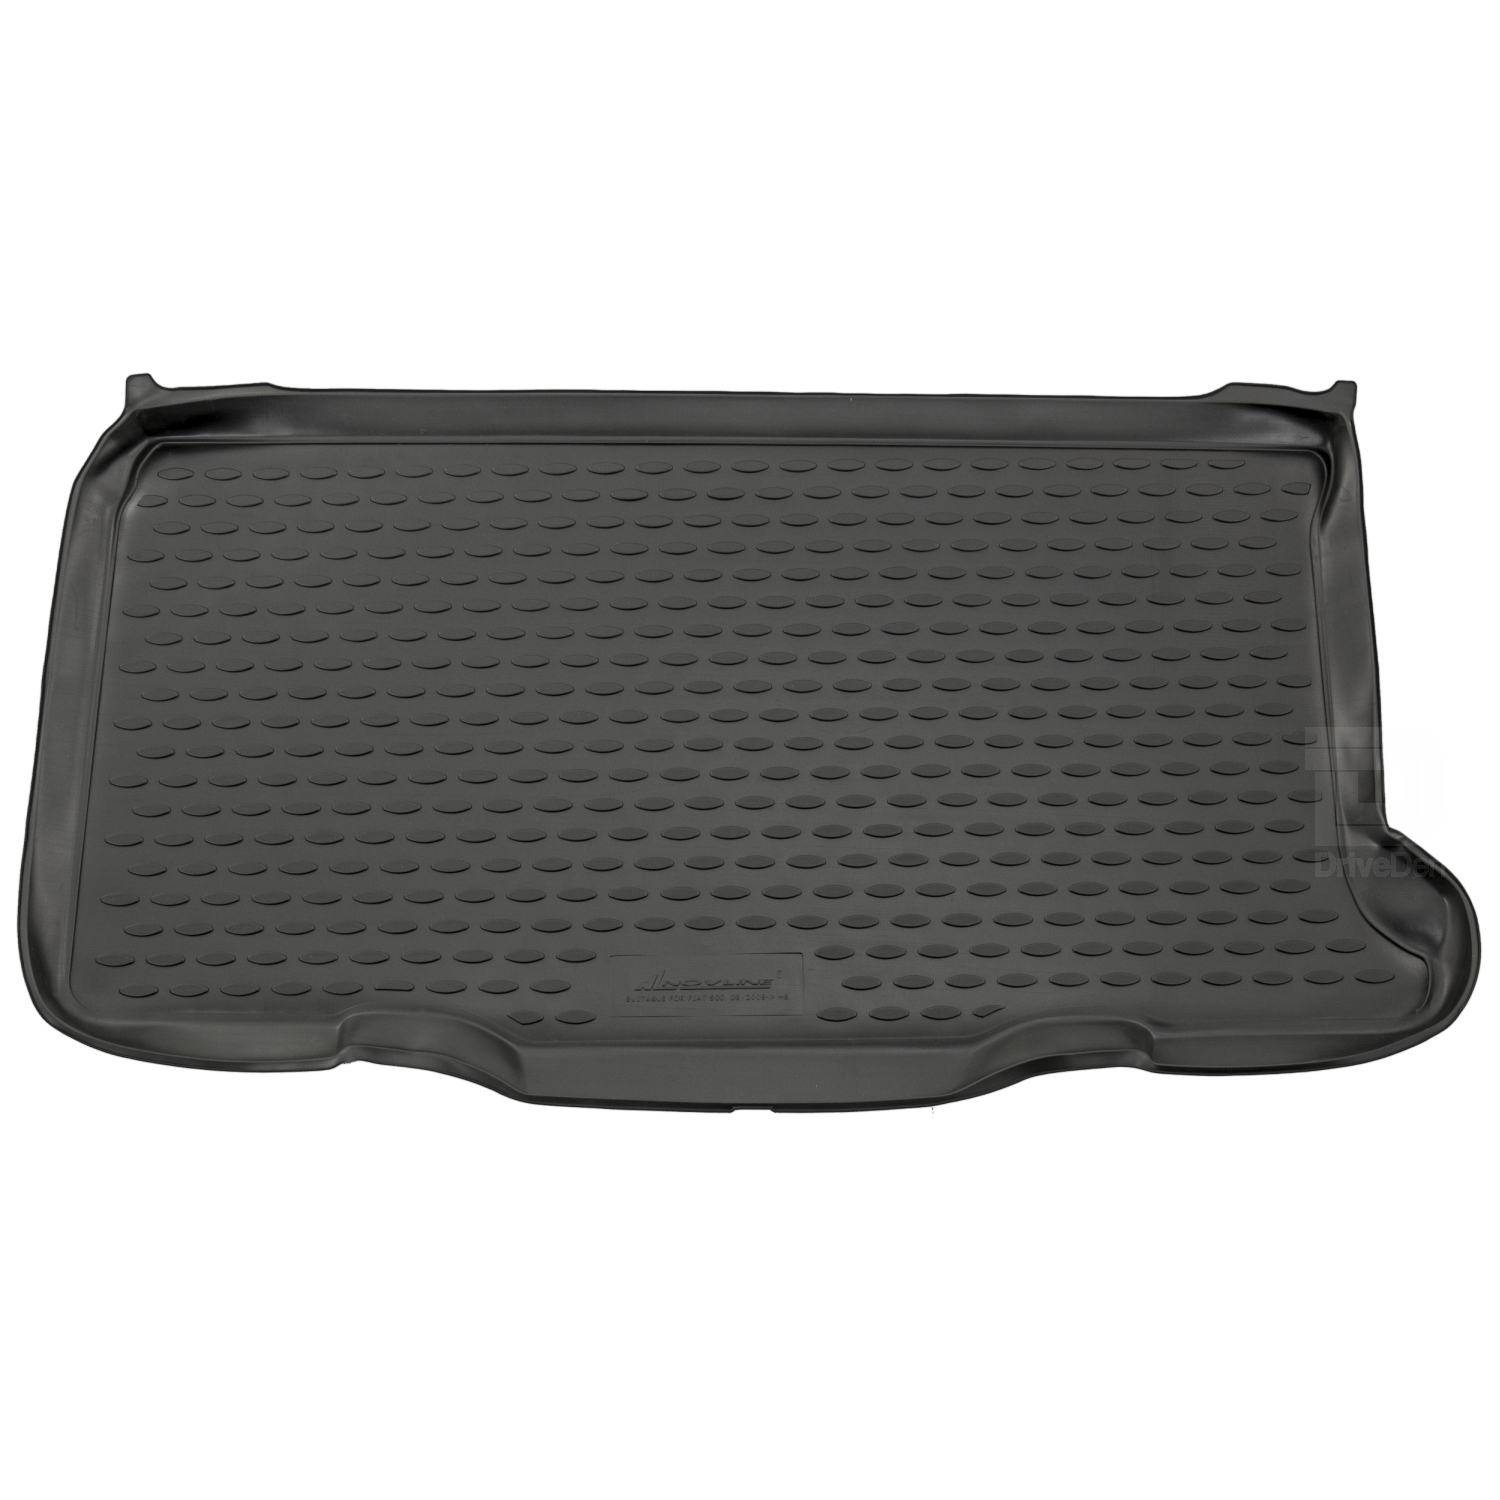 Tailored Fit Heavy Duty Durable Black Rubber Boot Liner Tray Mat Protector